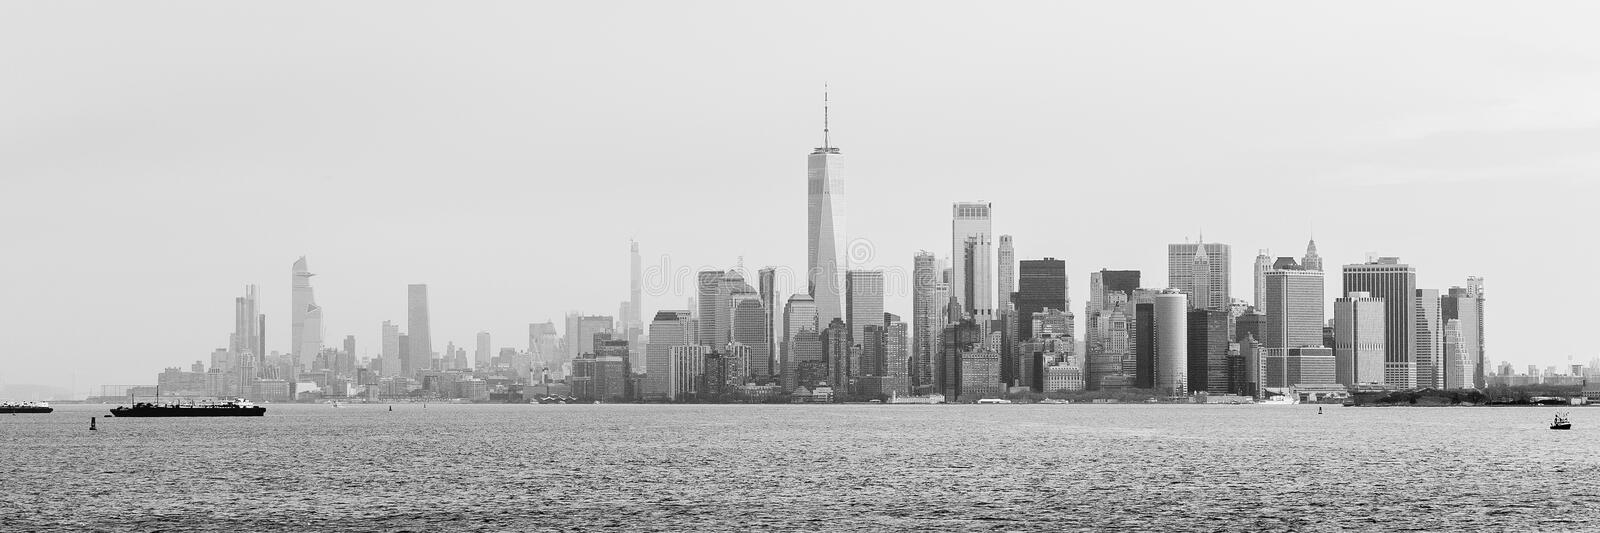 Skyline of lower Manhattan of New York City. From ferry boat. Black and white panoramic view. March 2020 stock image